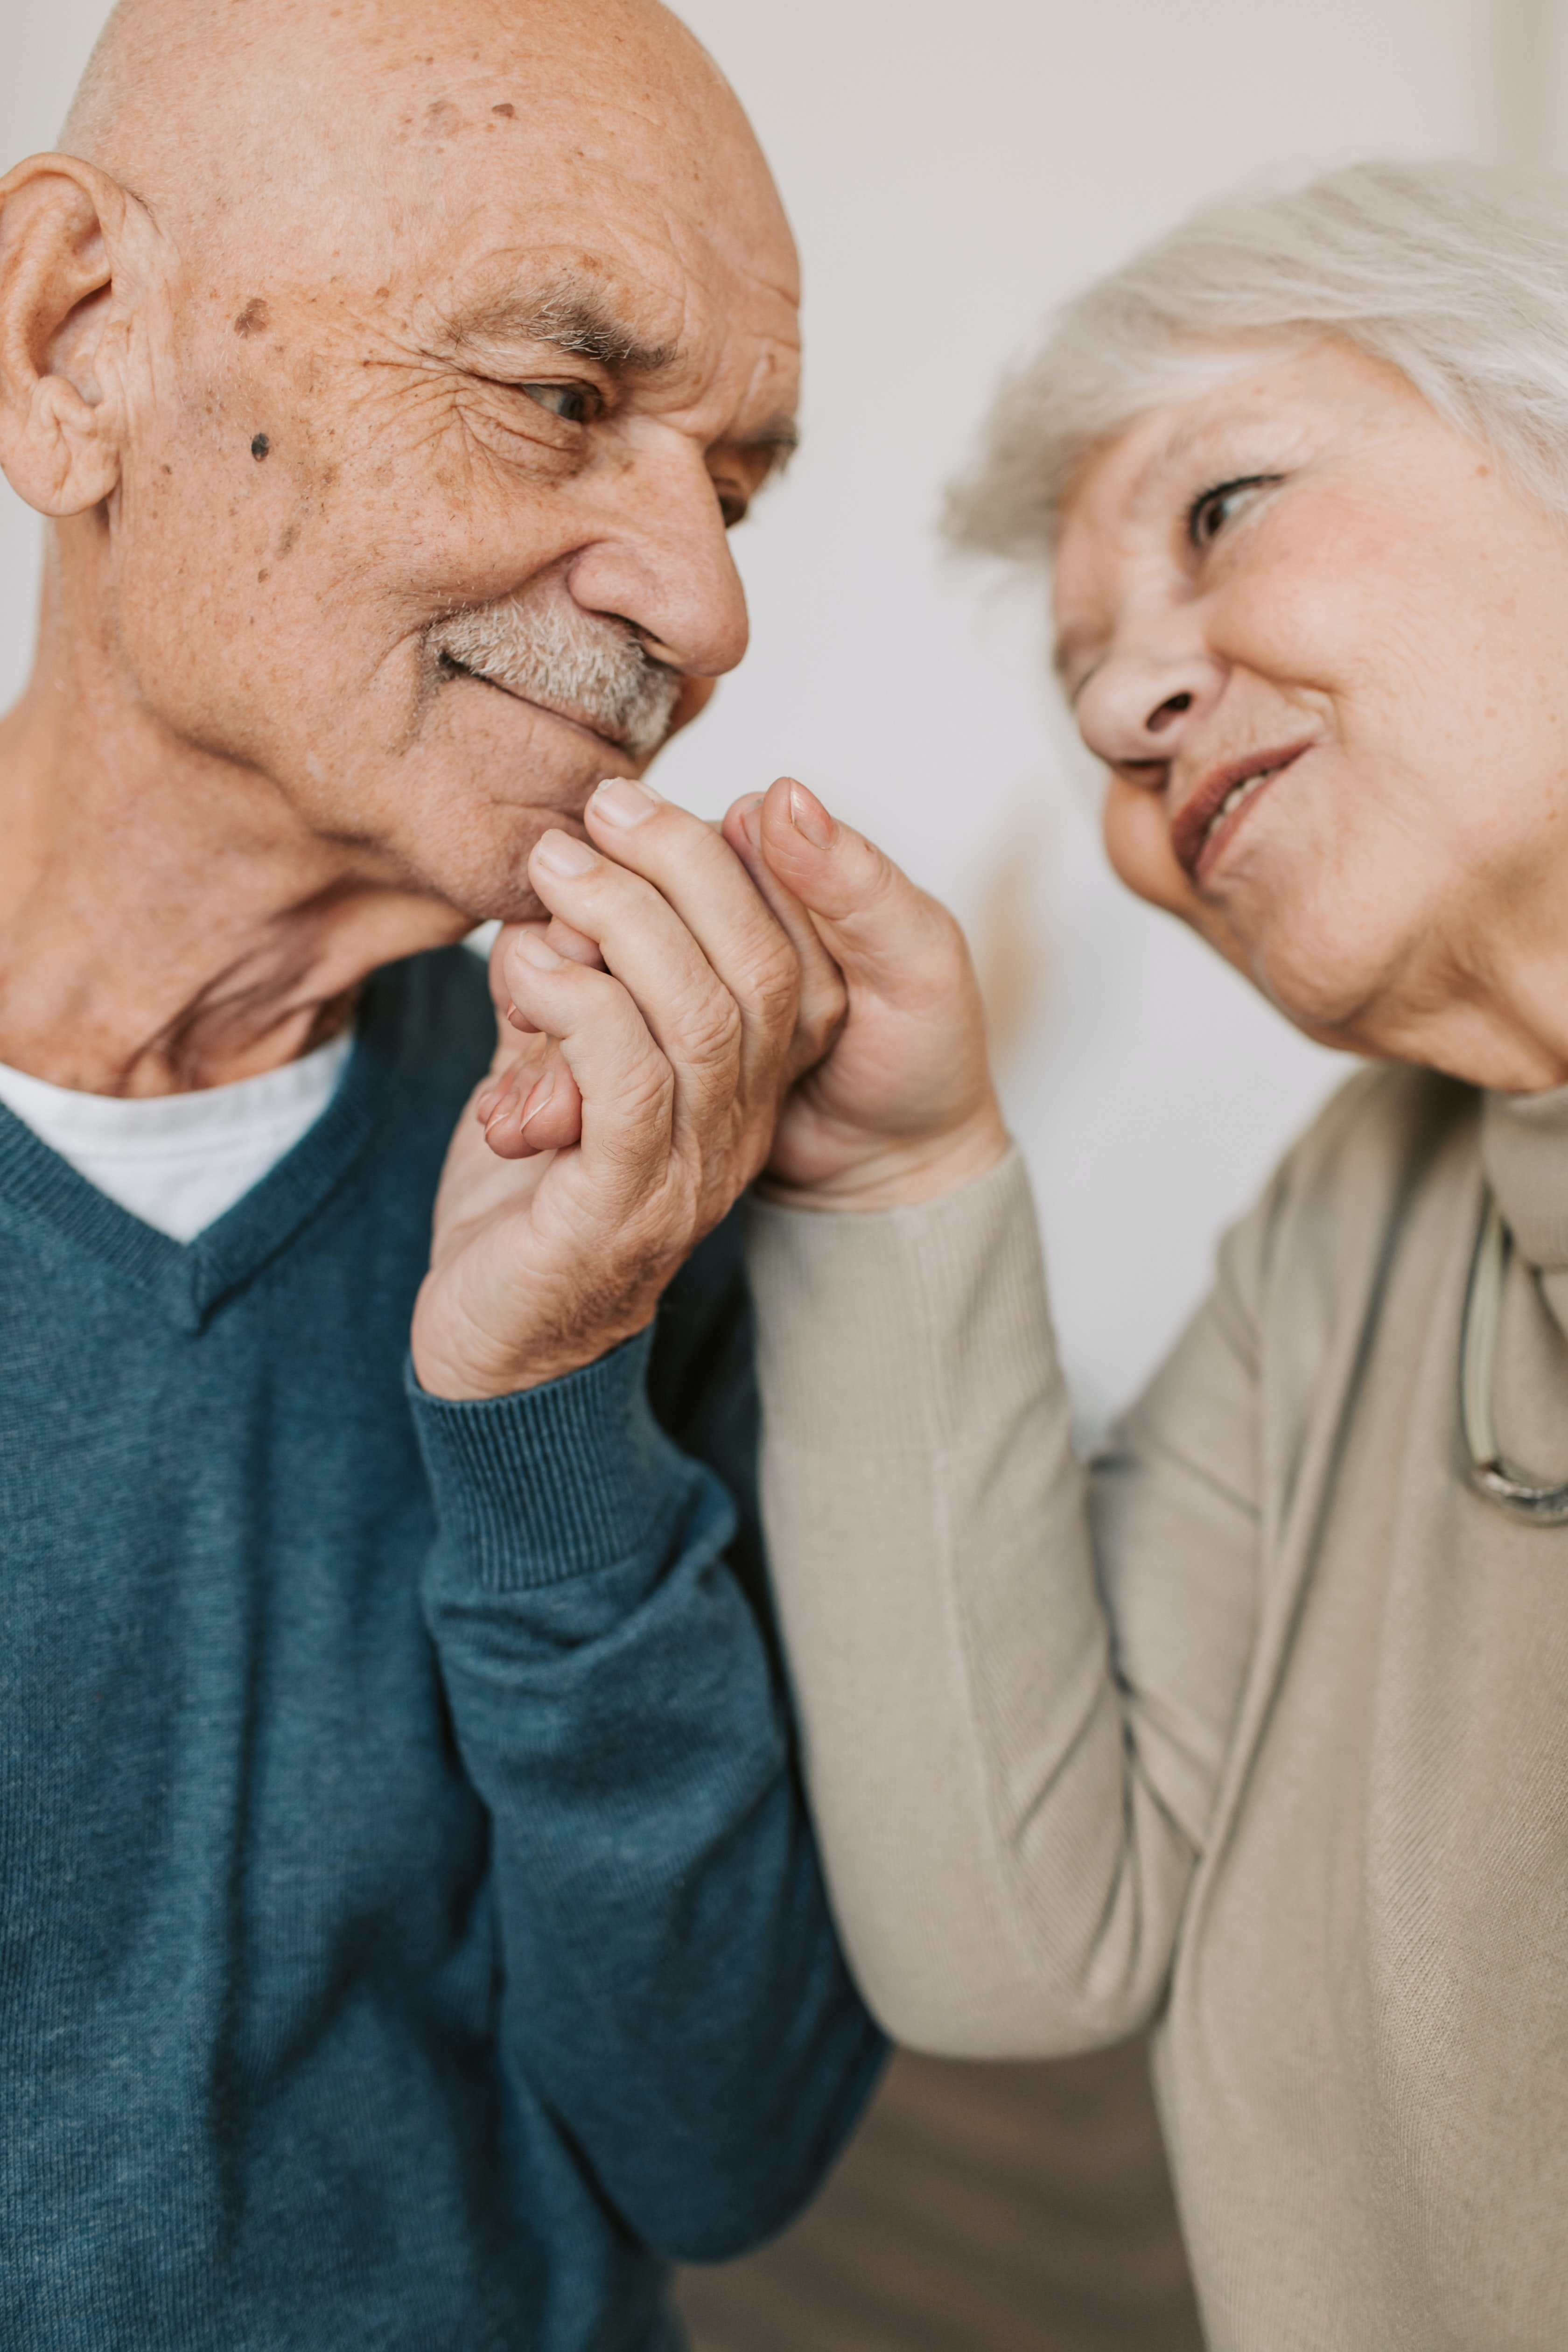 An elderly couple looking at each other lovingly.   Source: Pexels/ Vlada Karpovich